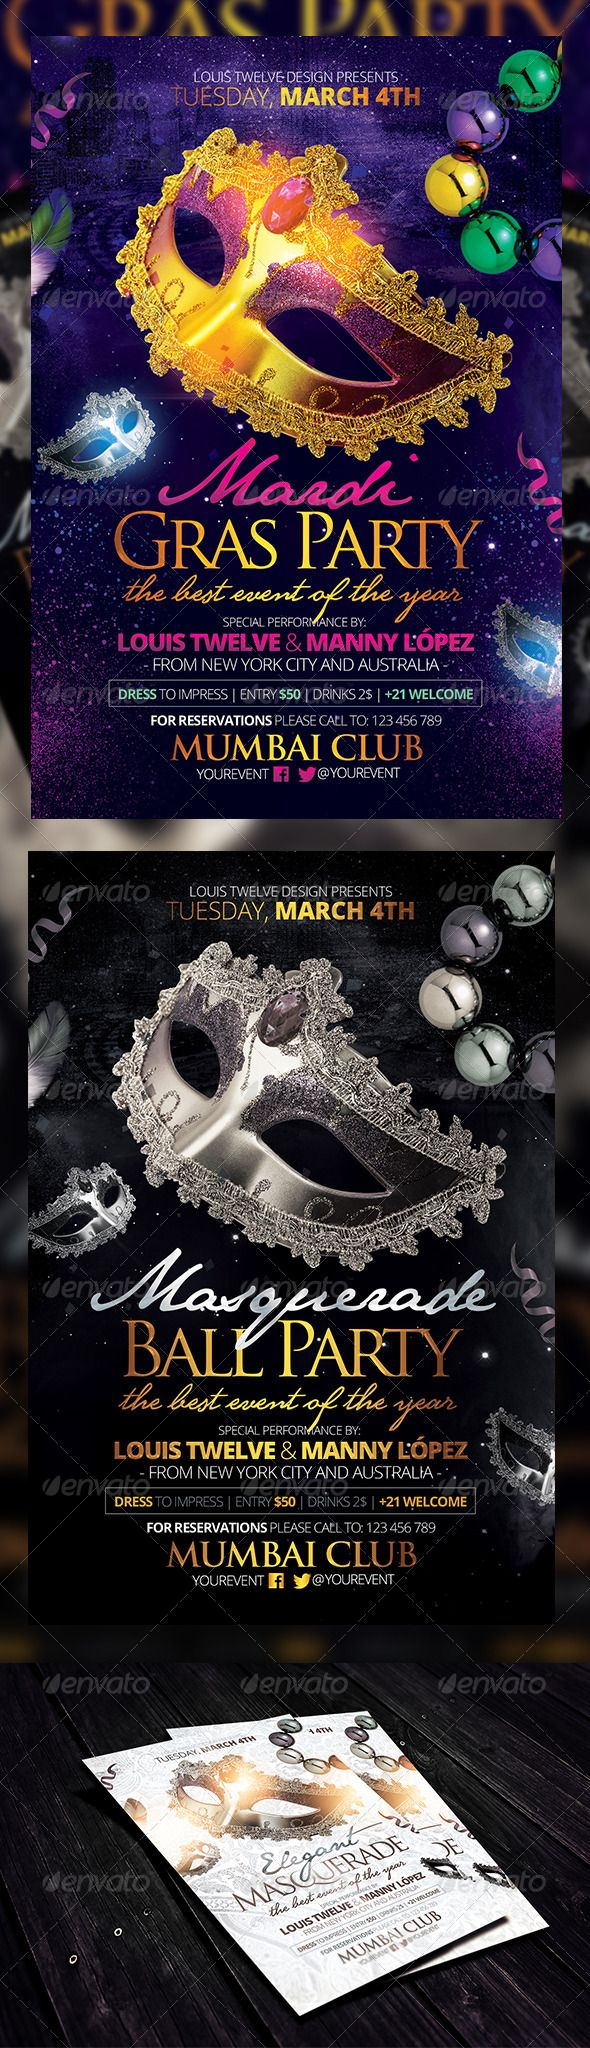 best images about flyers template saturday night masquerade ball mardi gras party flyers template